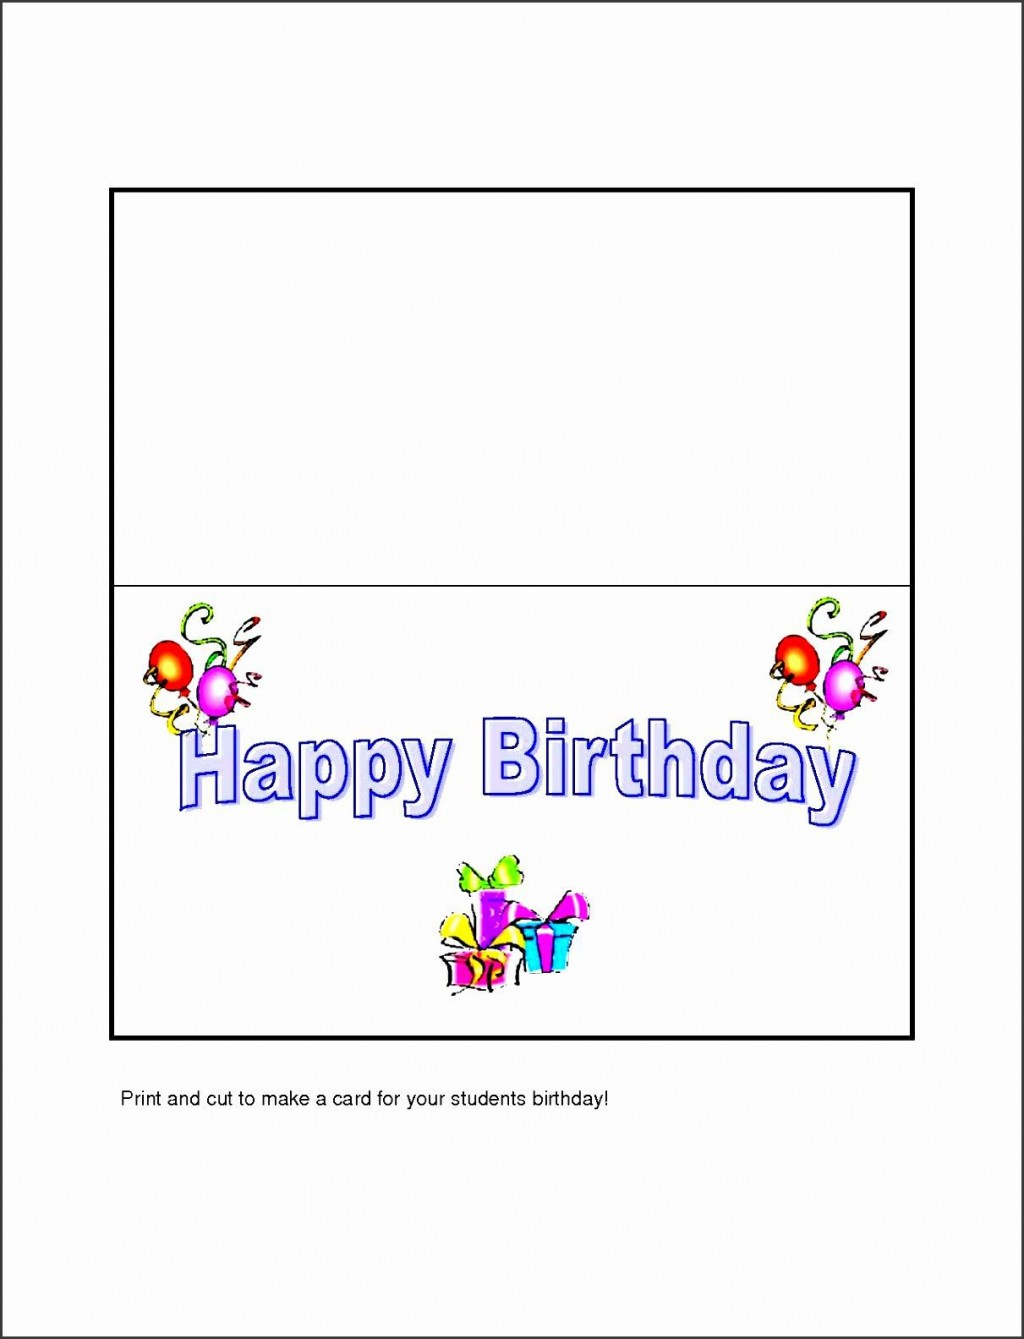 009 Top Microsoft Word Card Template Picture  Birthday Download Busines FreeLarge